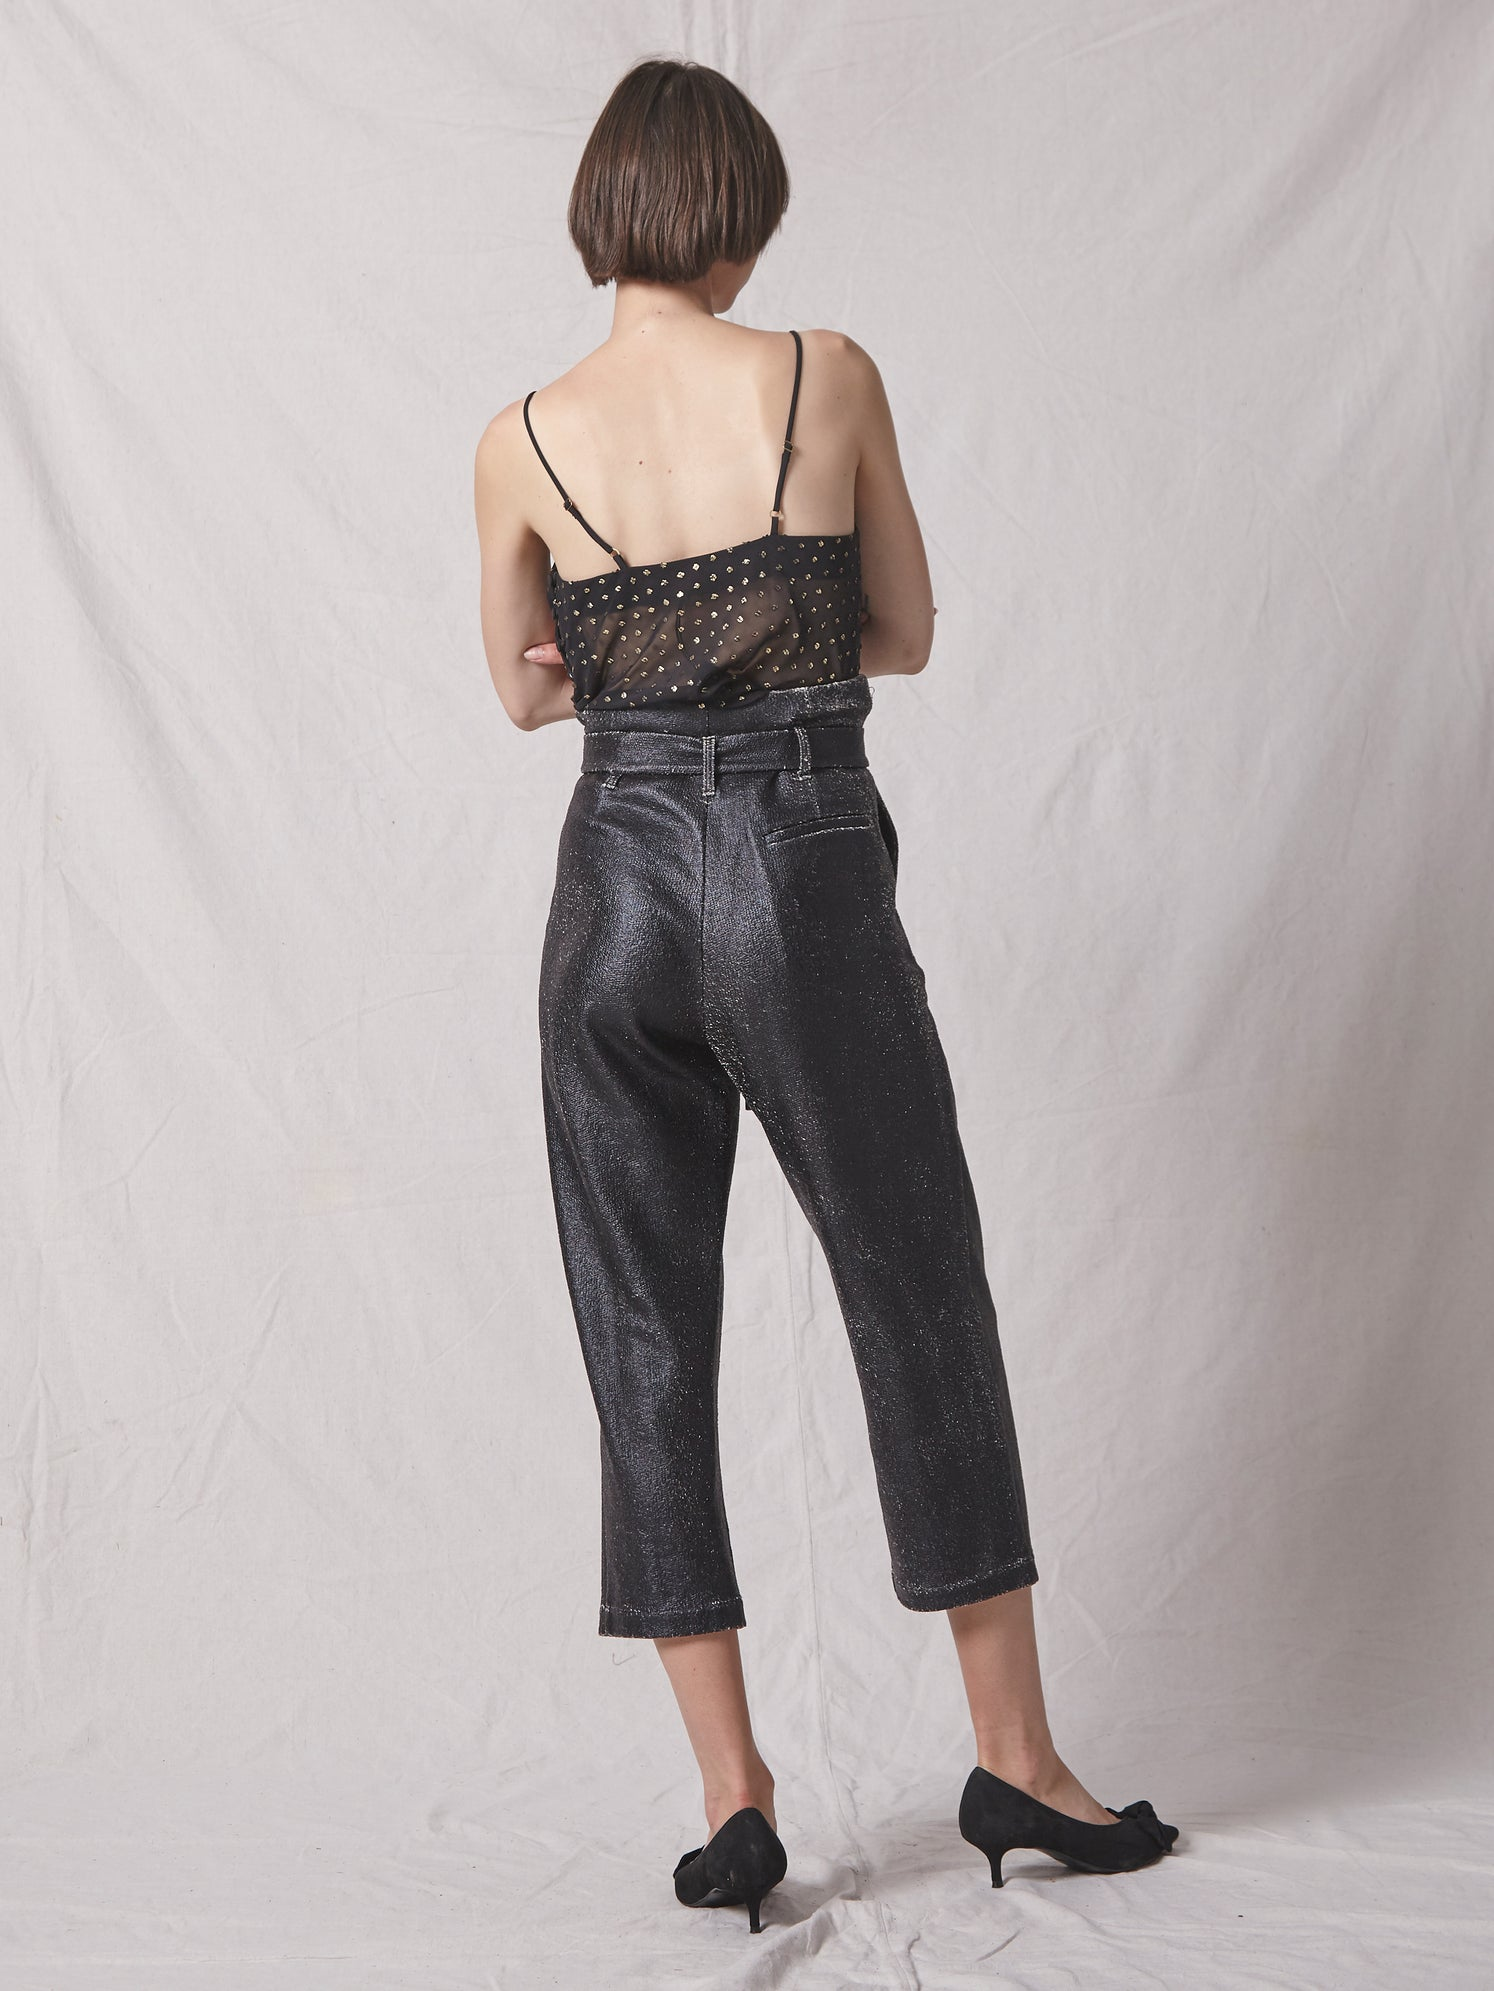 High-rise foiled knit jersey cropped pant with paperbag waist and drapey tie belt Alternate